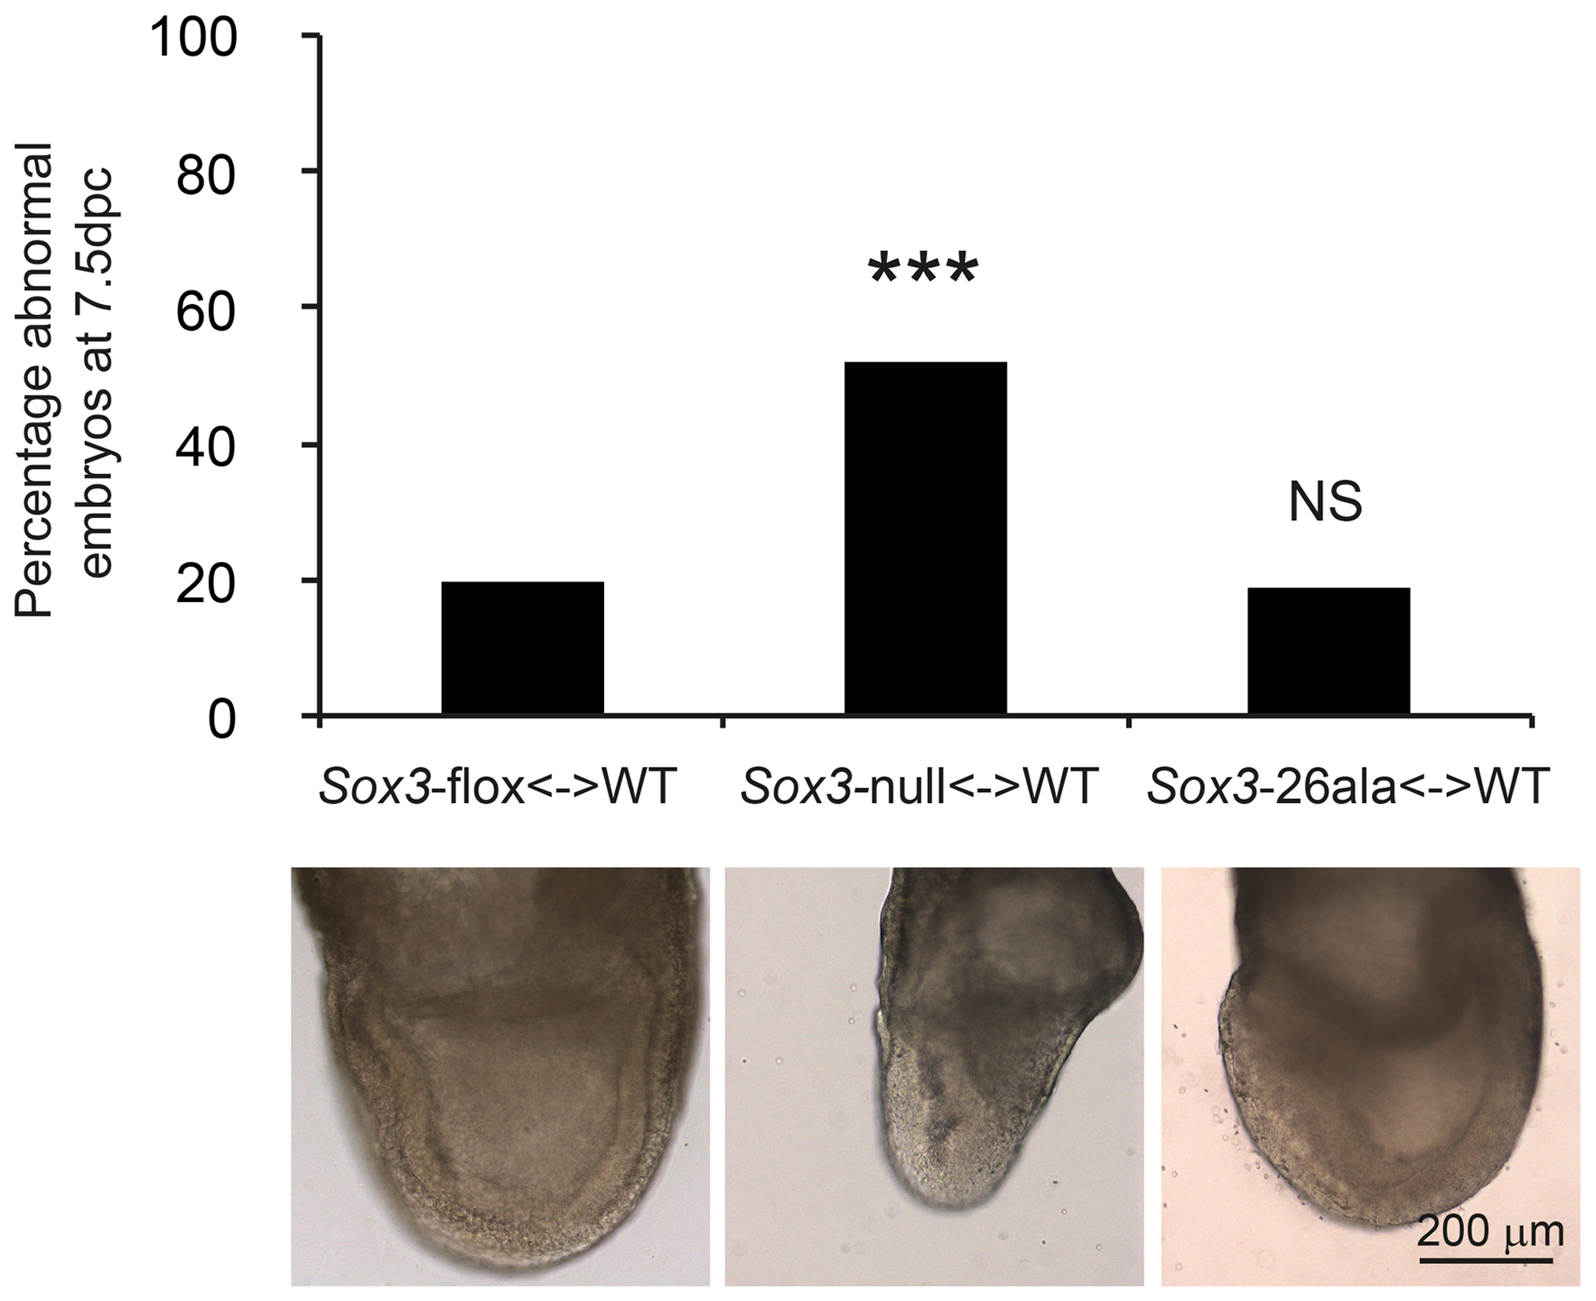 Residual nuclear SOX3-26ala protein rescues a gastrulation defect of <i>Sox3</i>-null &lt;-&gt; WT chimeric embryos.